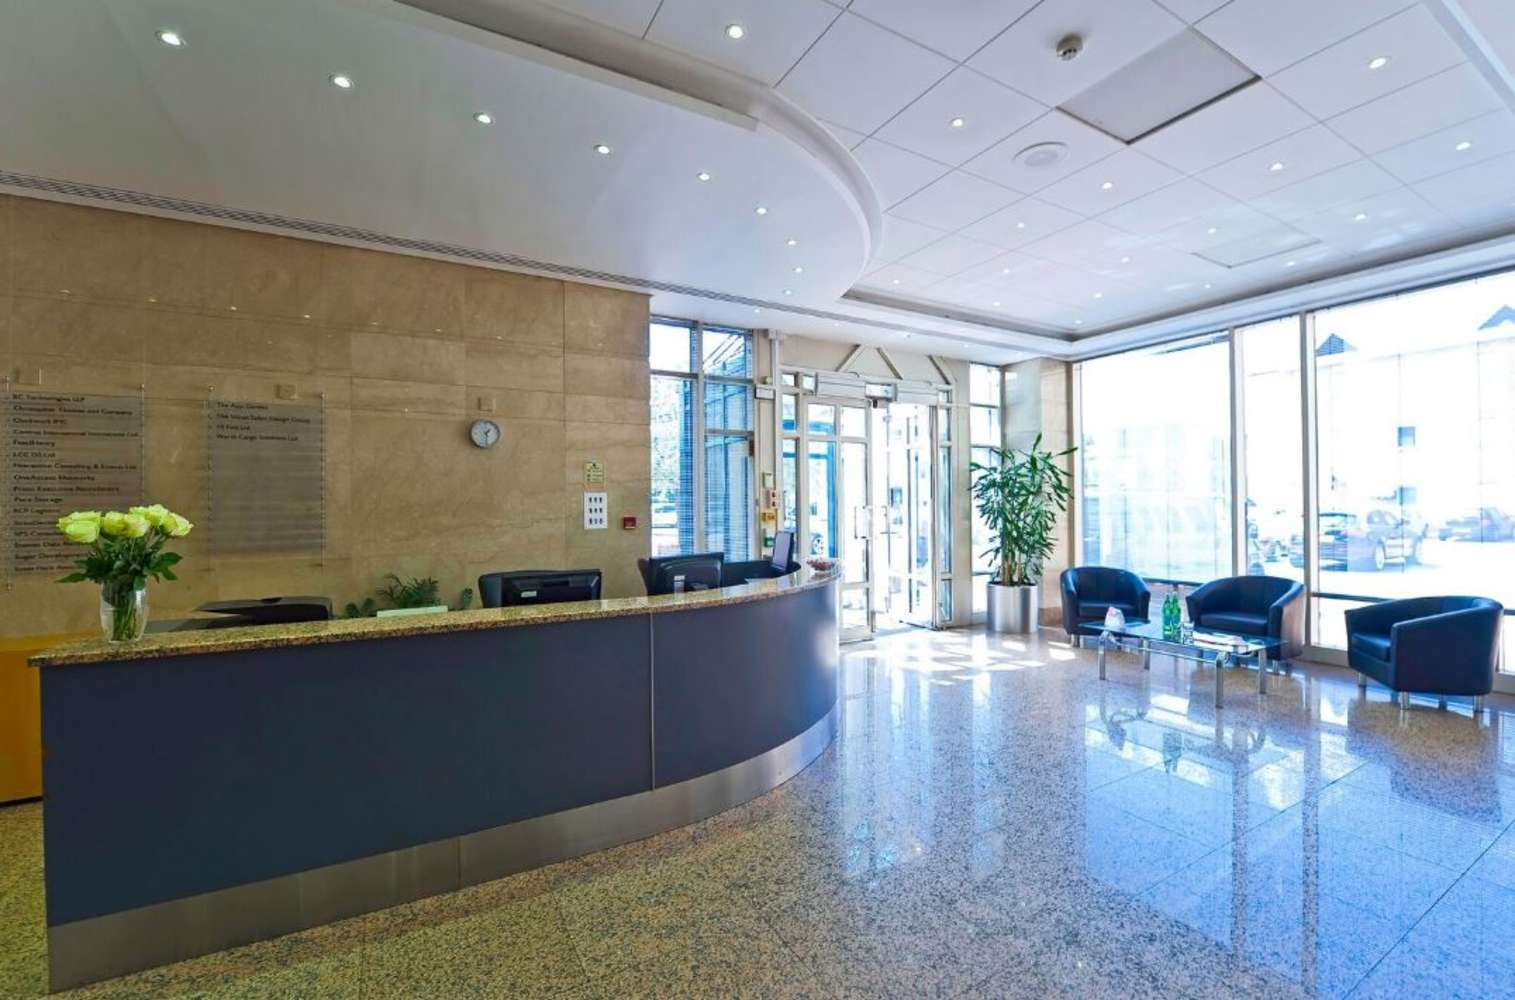 Serviced office Staines, TW18 3BA - Knyvett House - 1